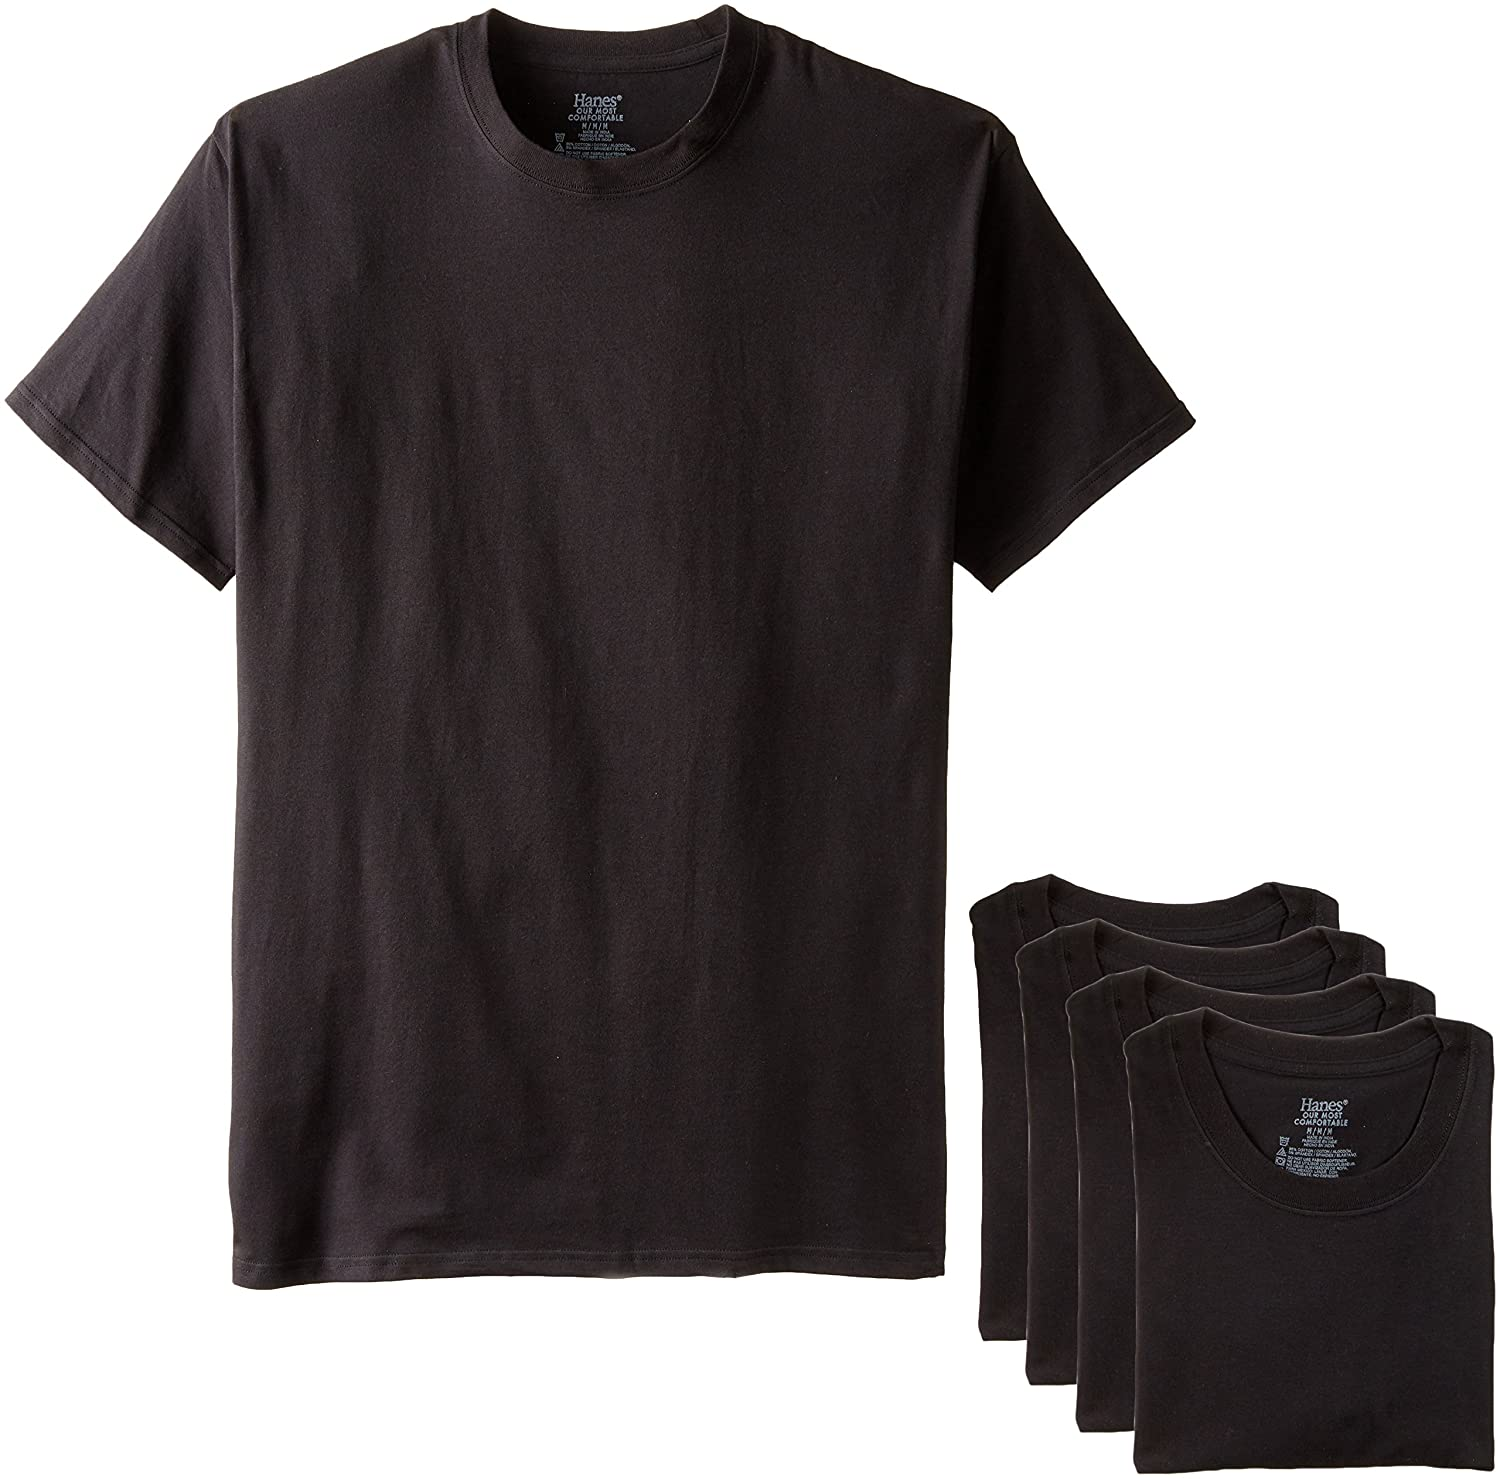 d3694860 Hanes T Shirts Amazon Uk – EDGE Engineering and Consulting Limited